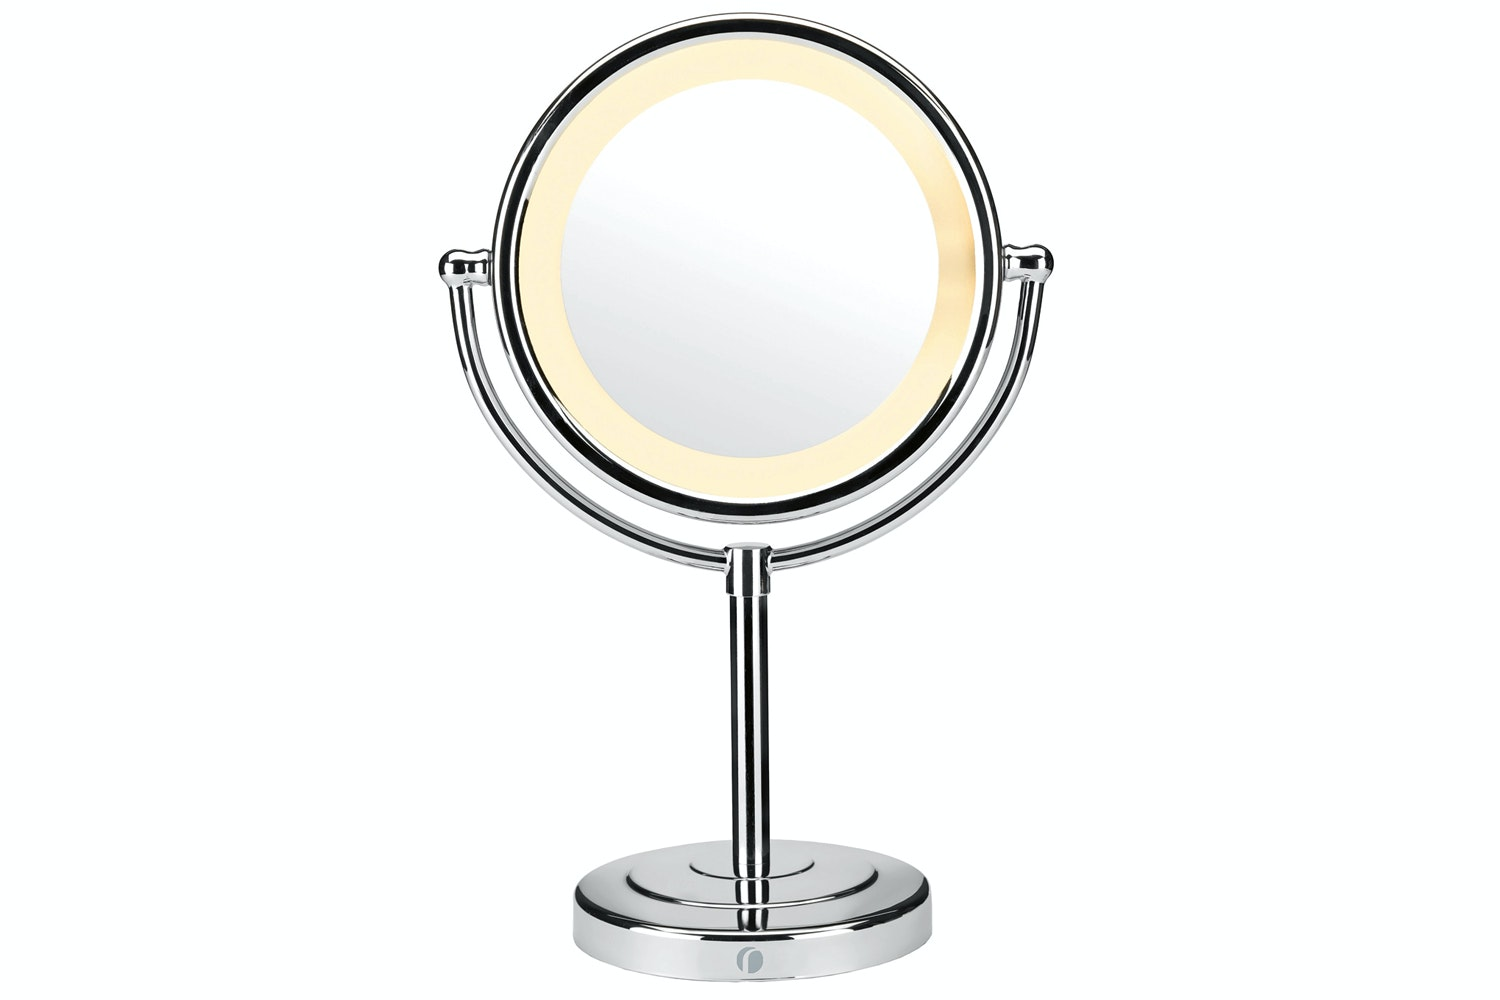 BaByliss Chrome Illuminated Mirror